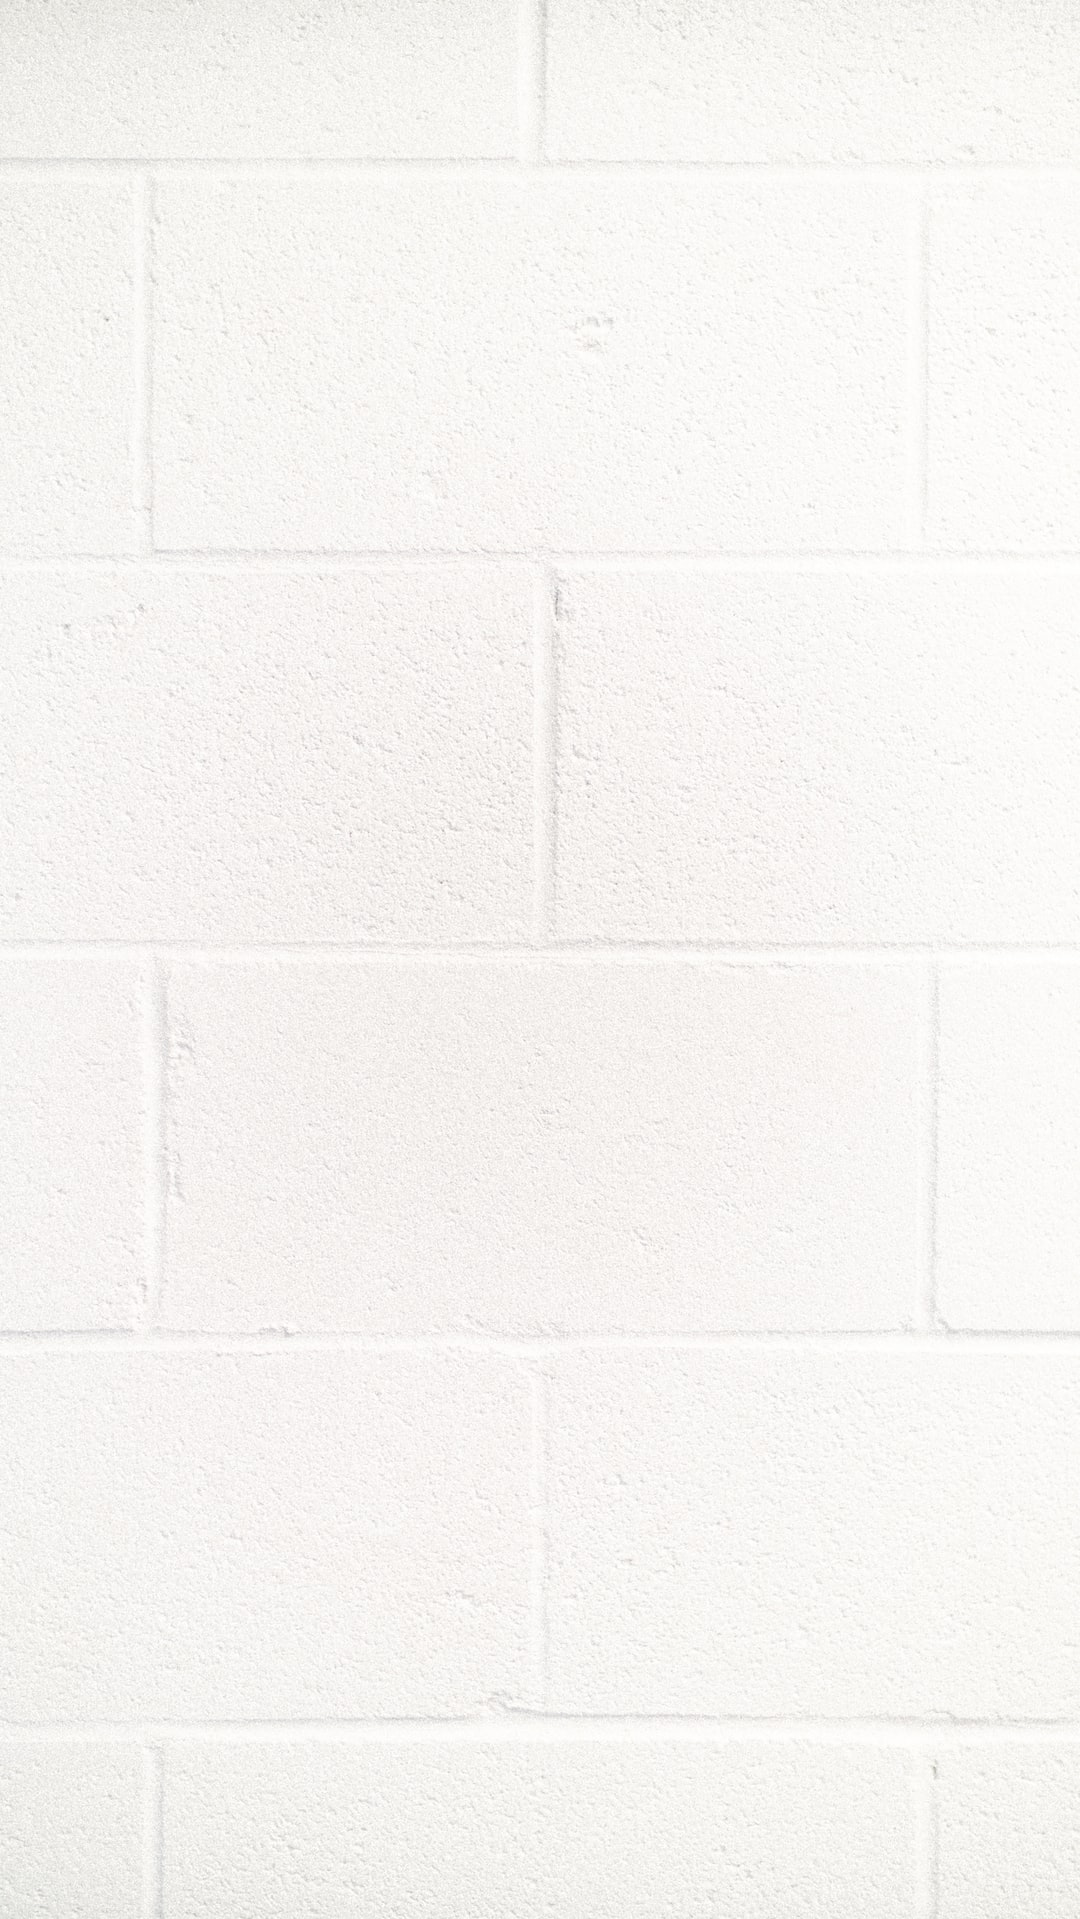 I needed a photo of white brick. But I couldn't find any. So I took one, and here it is.